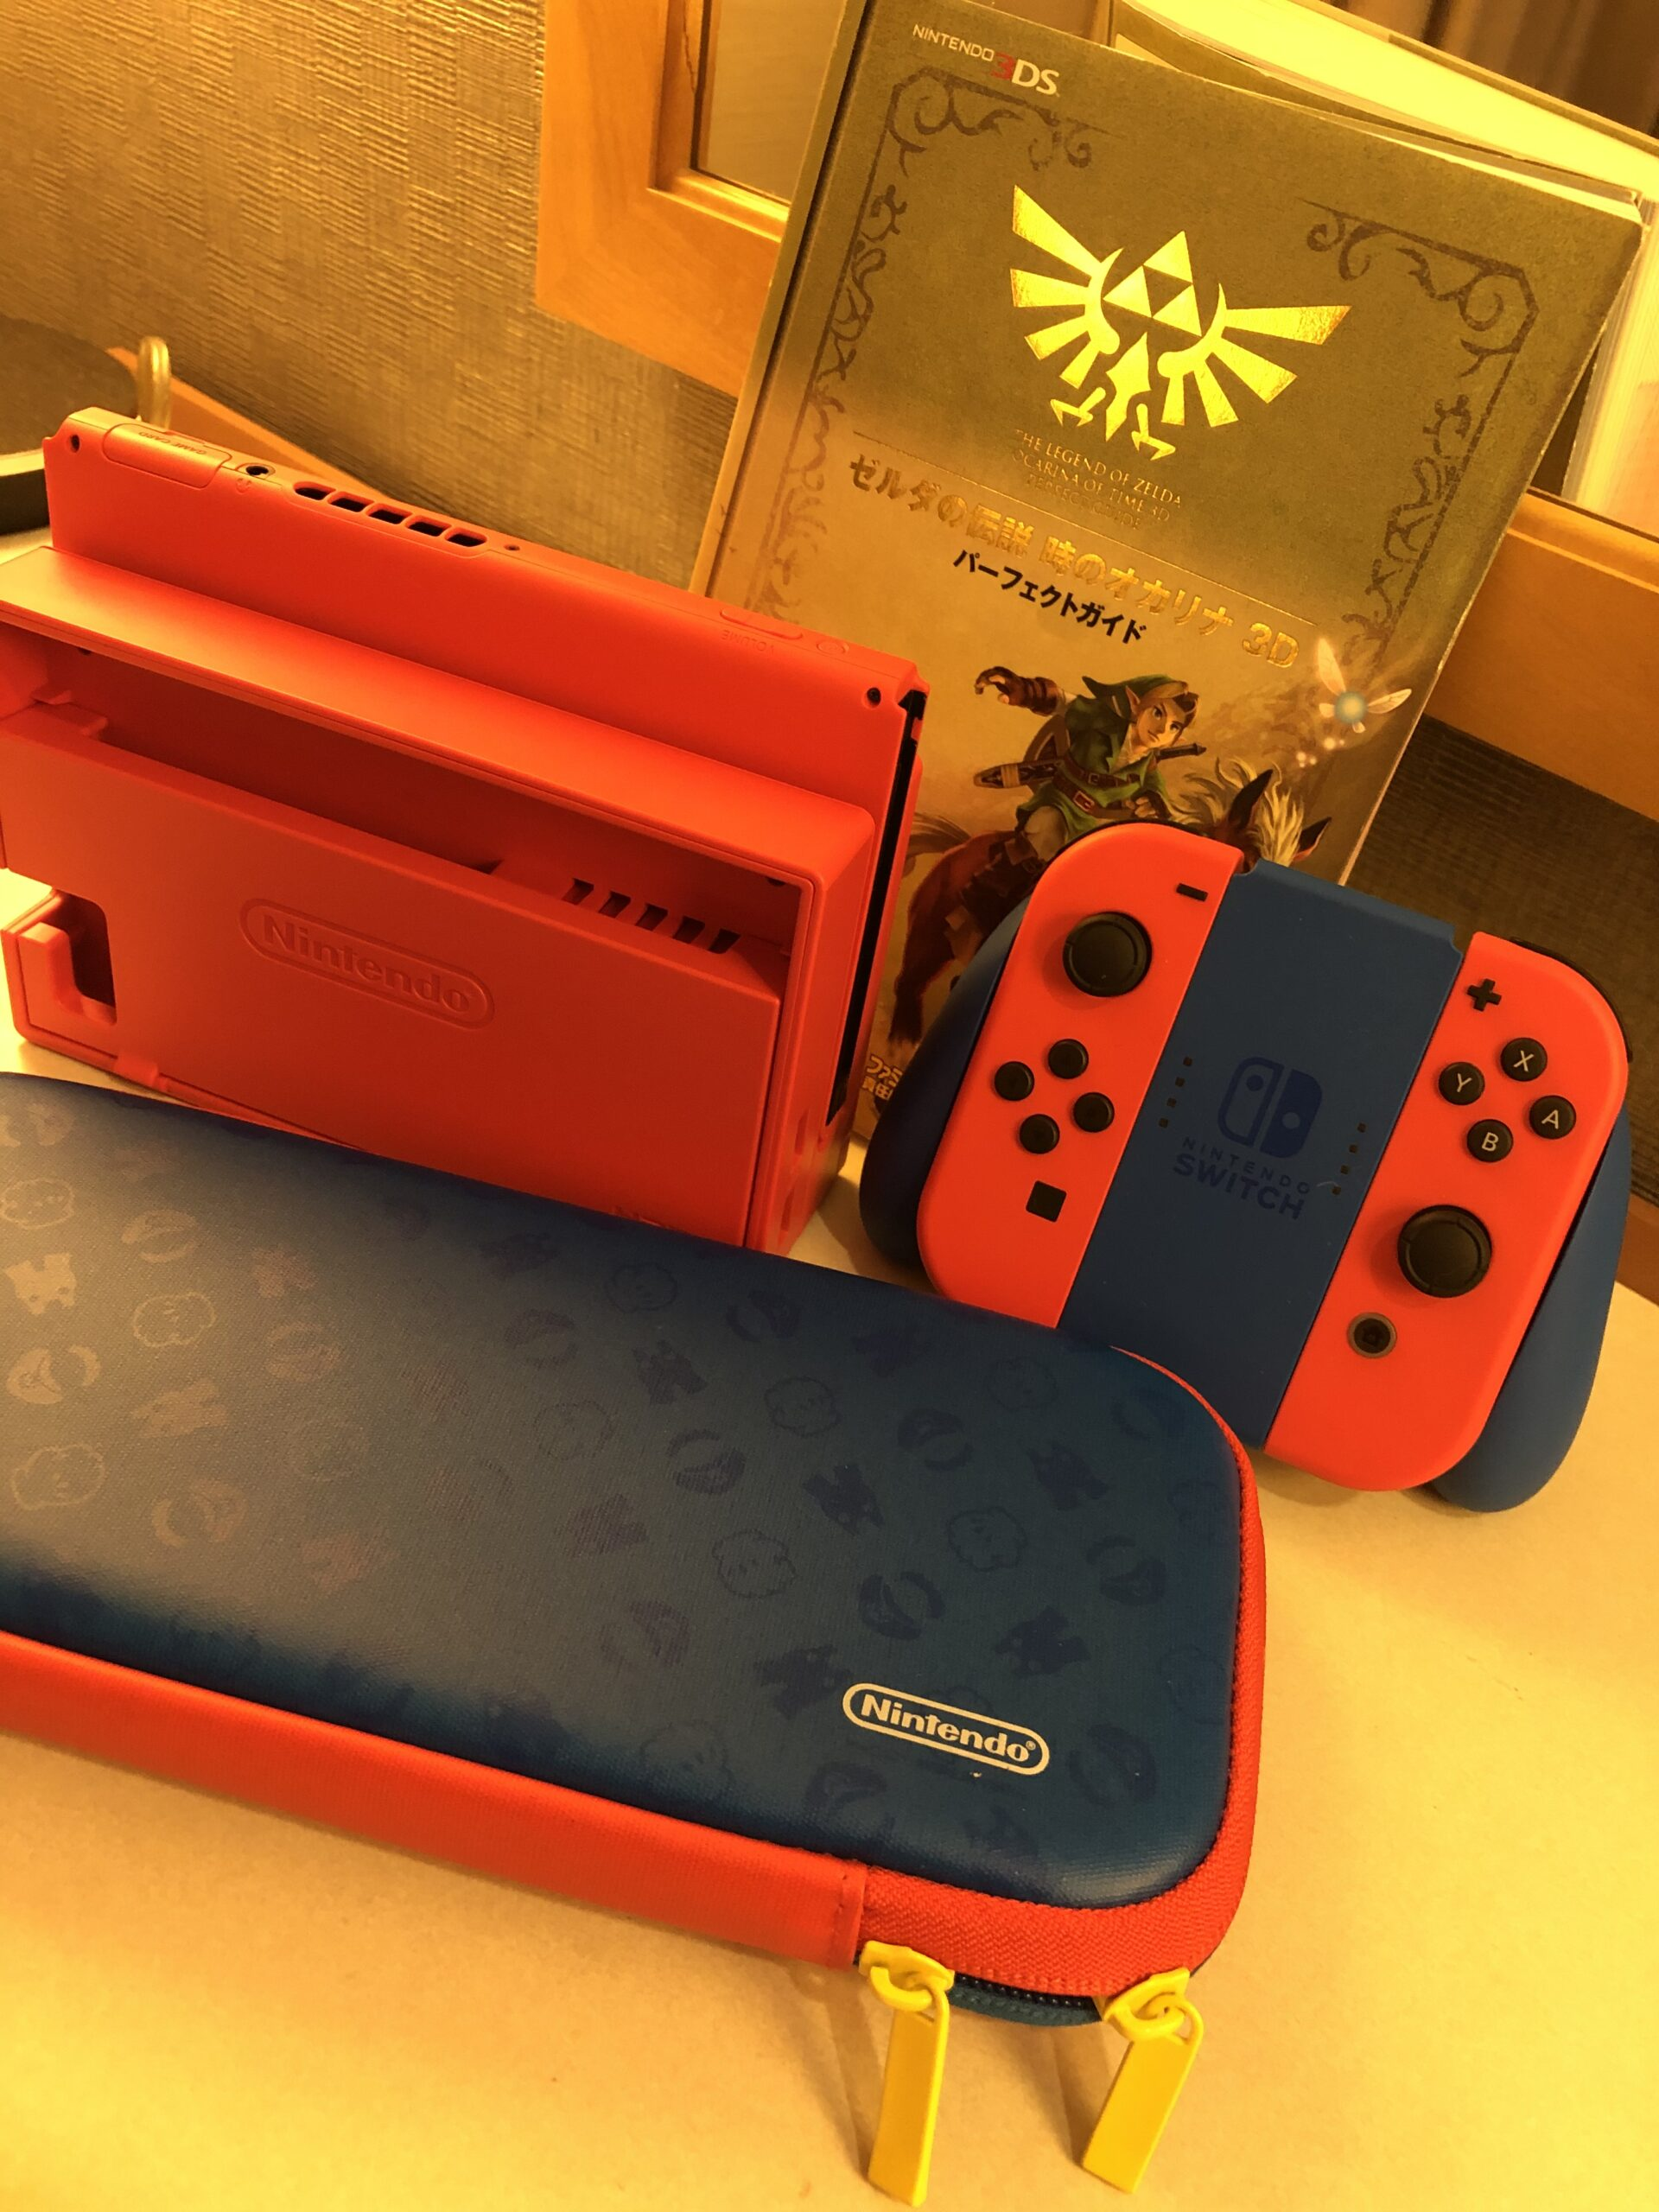 Unboxing Video: Nintendo Switch, Mario Red & Blue Edition - A carne é fraca!